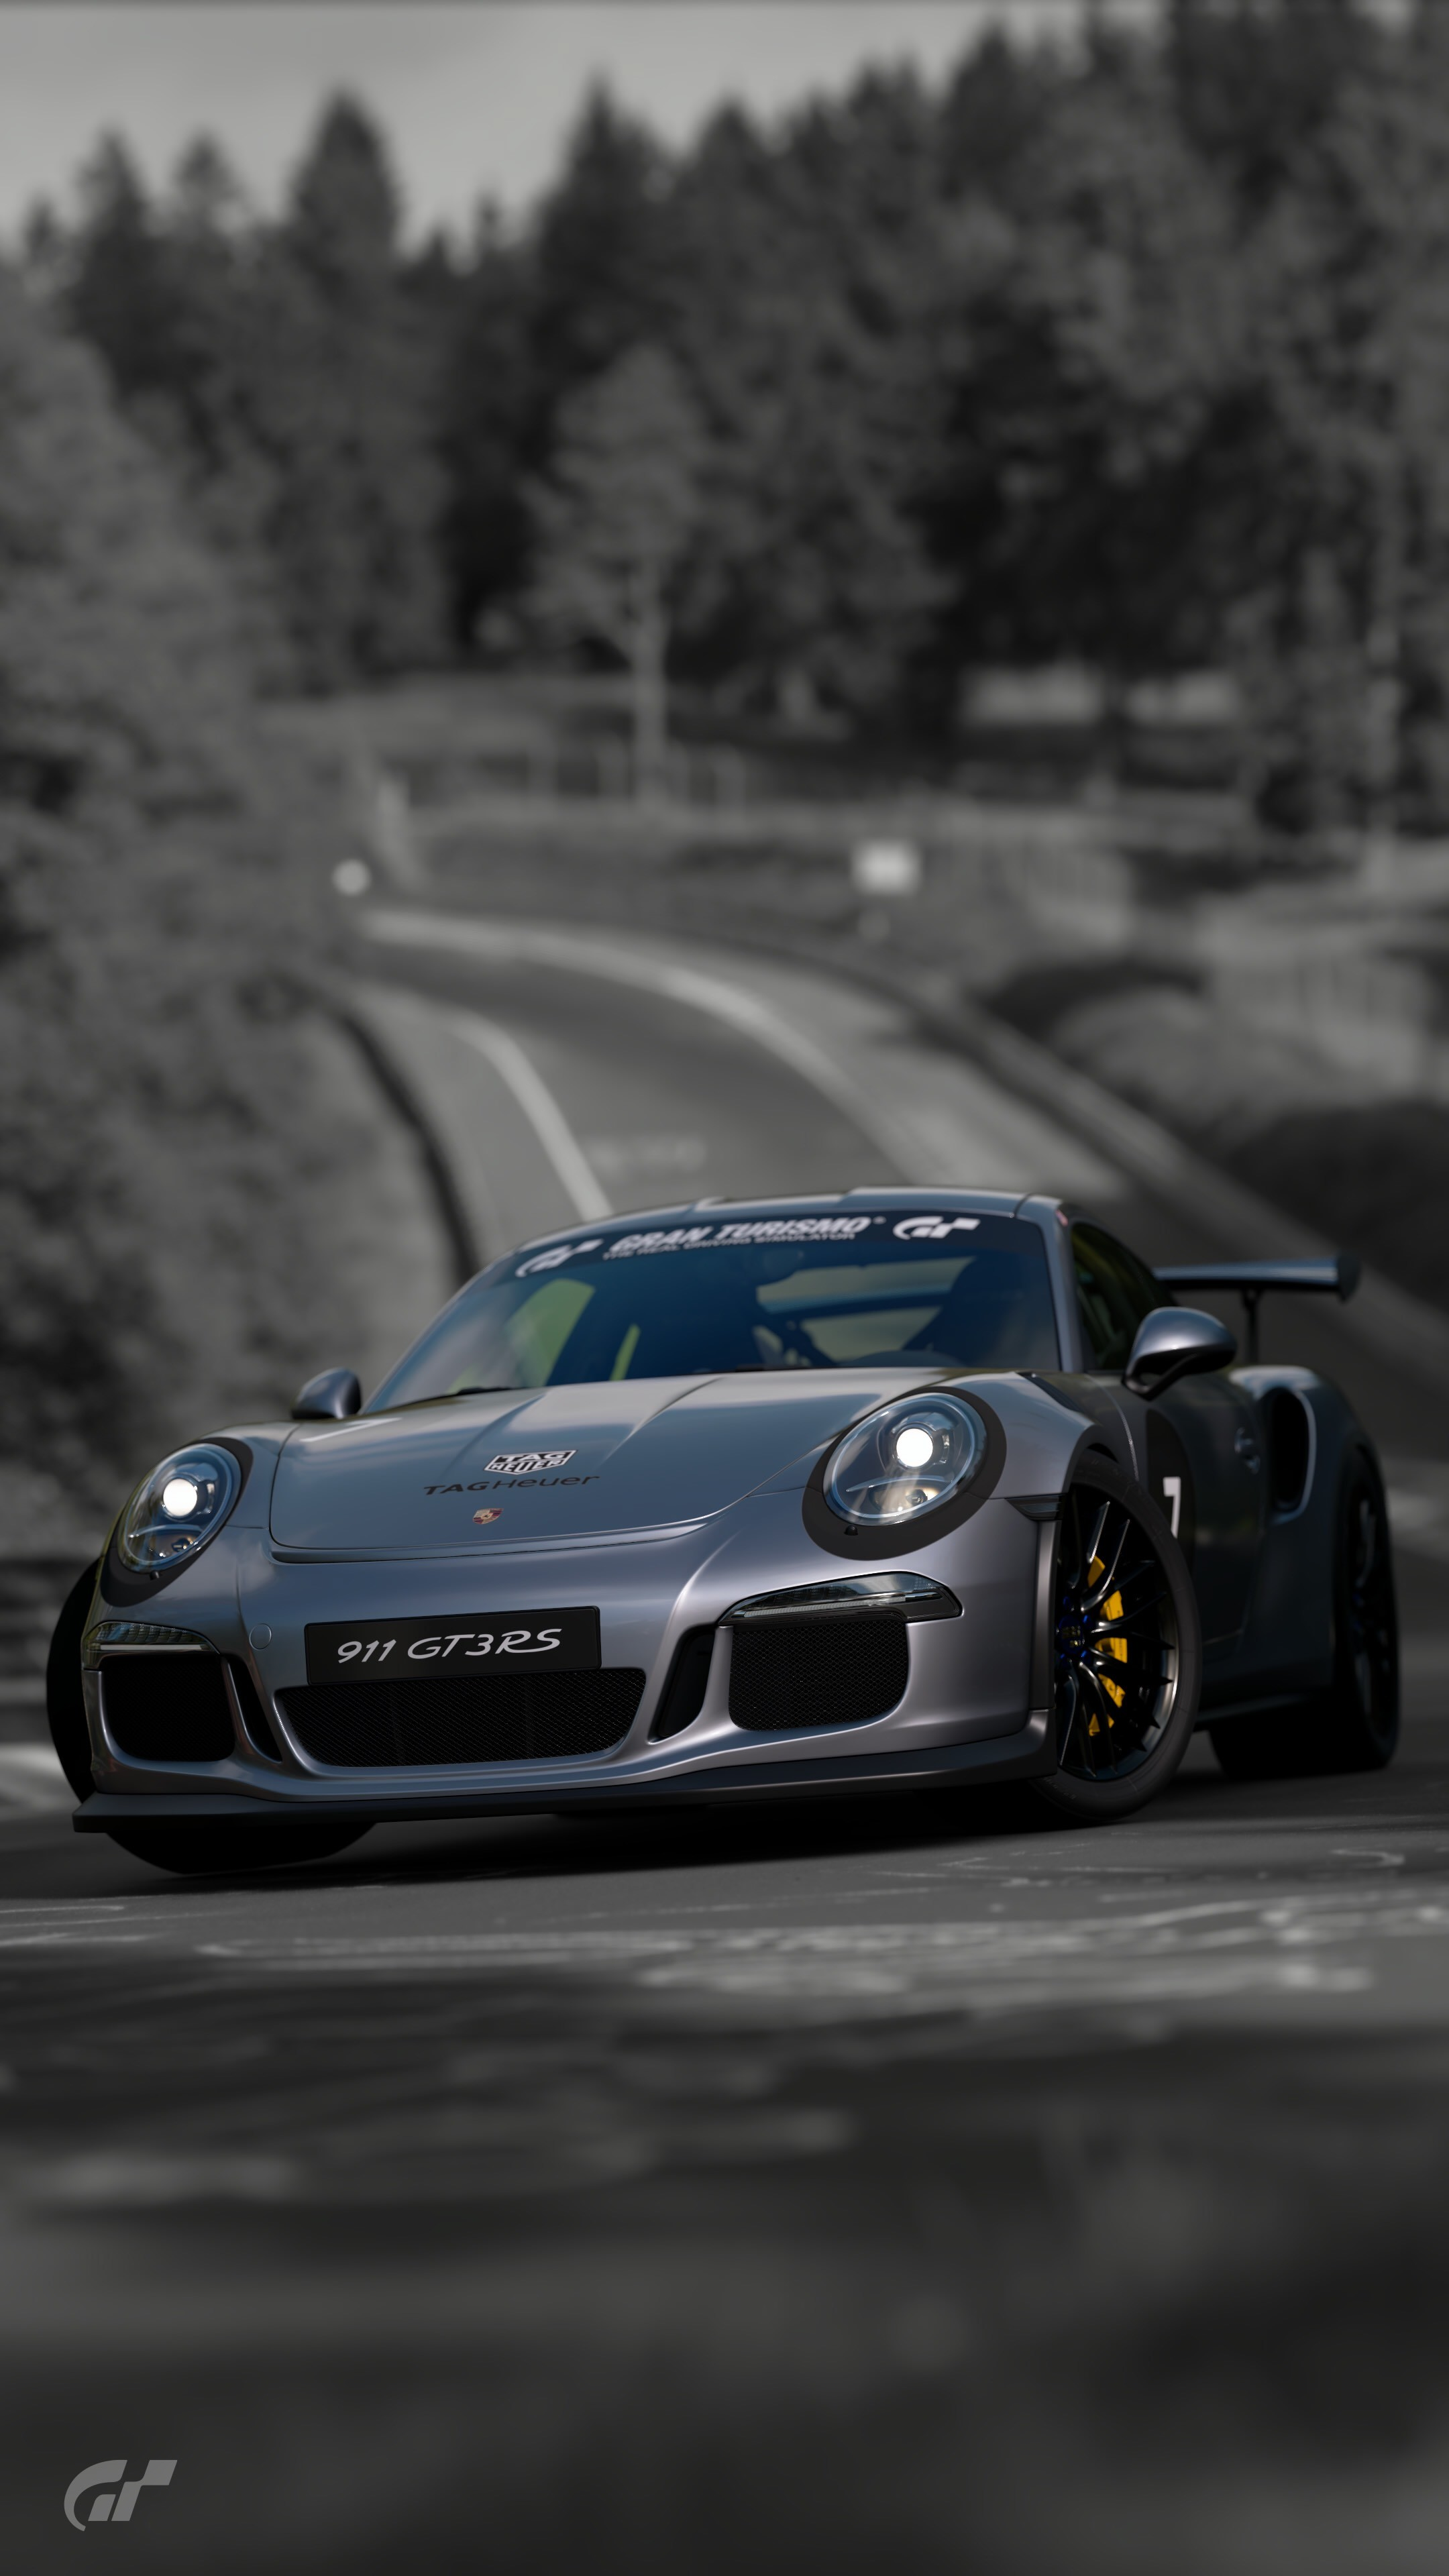 Porsche Gt3 Rs Wallpapers 80 Background Pictures